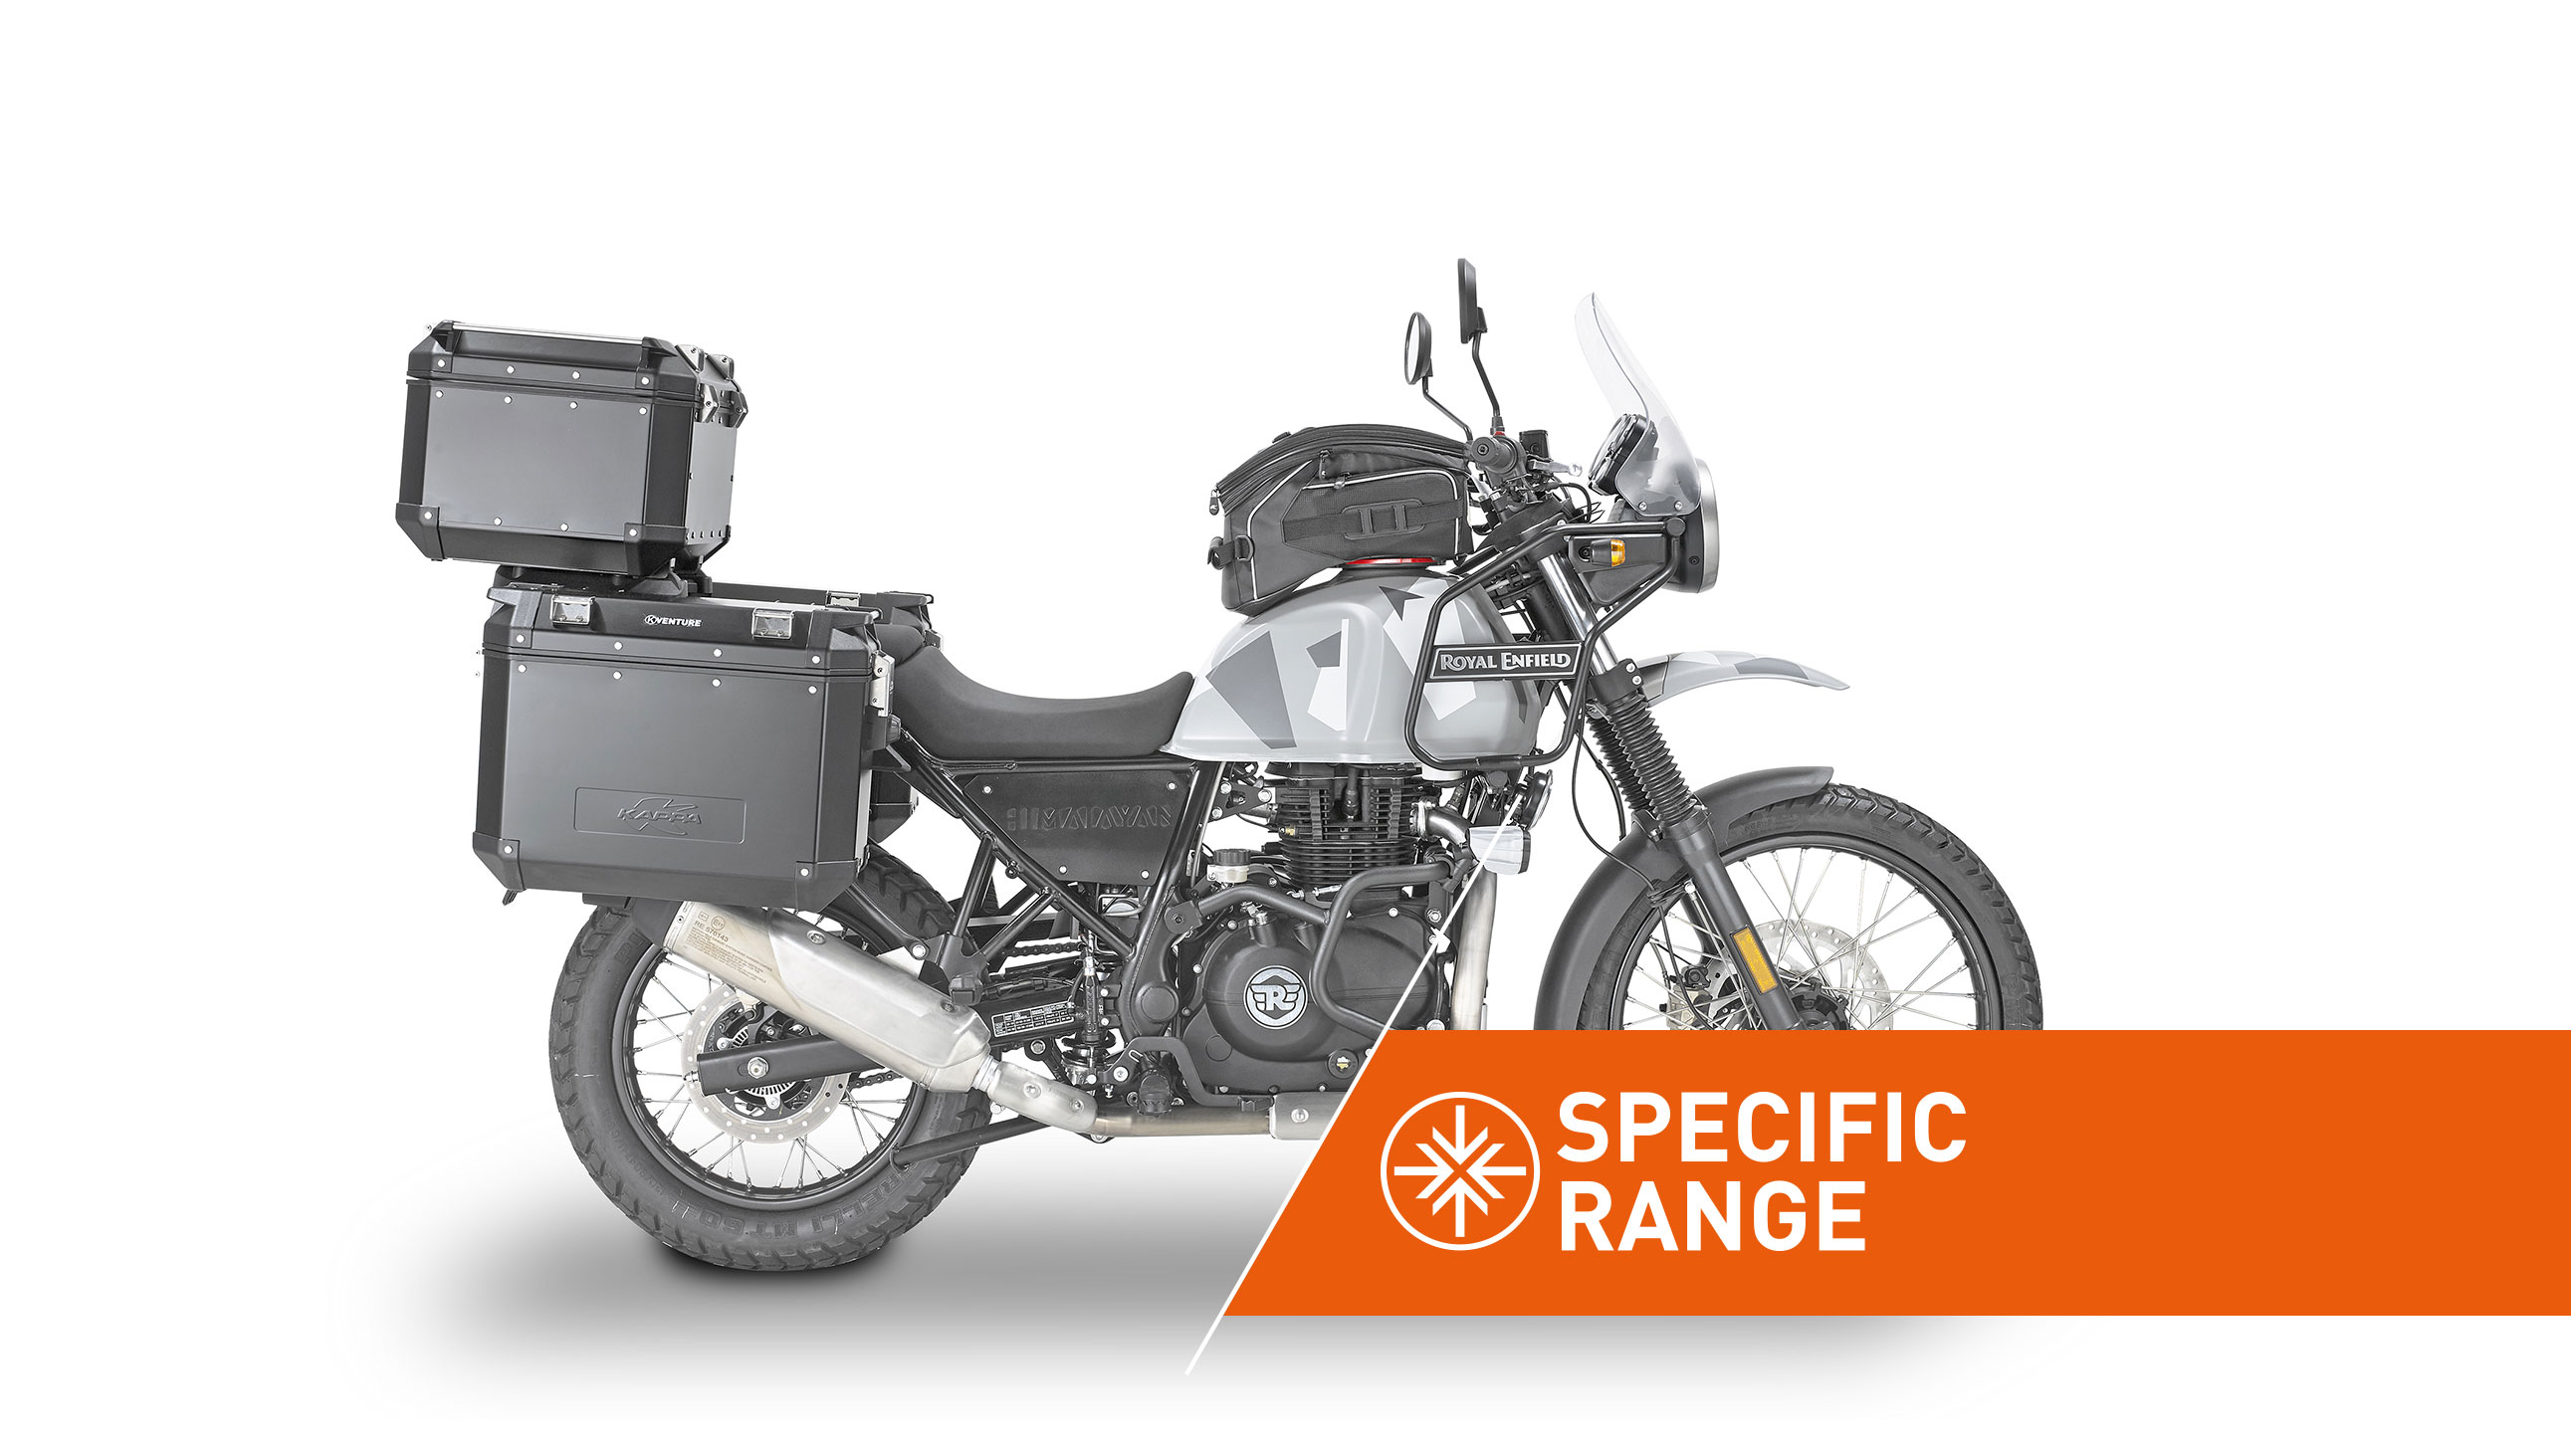 Linea di accessori specifica per ROYALENFIELD HIMALAYAN